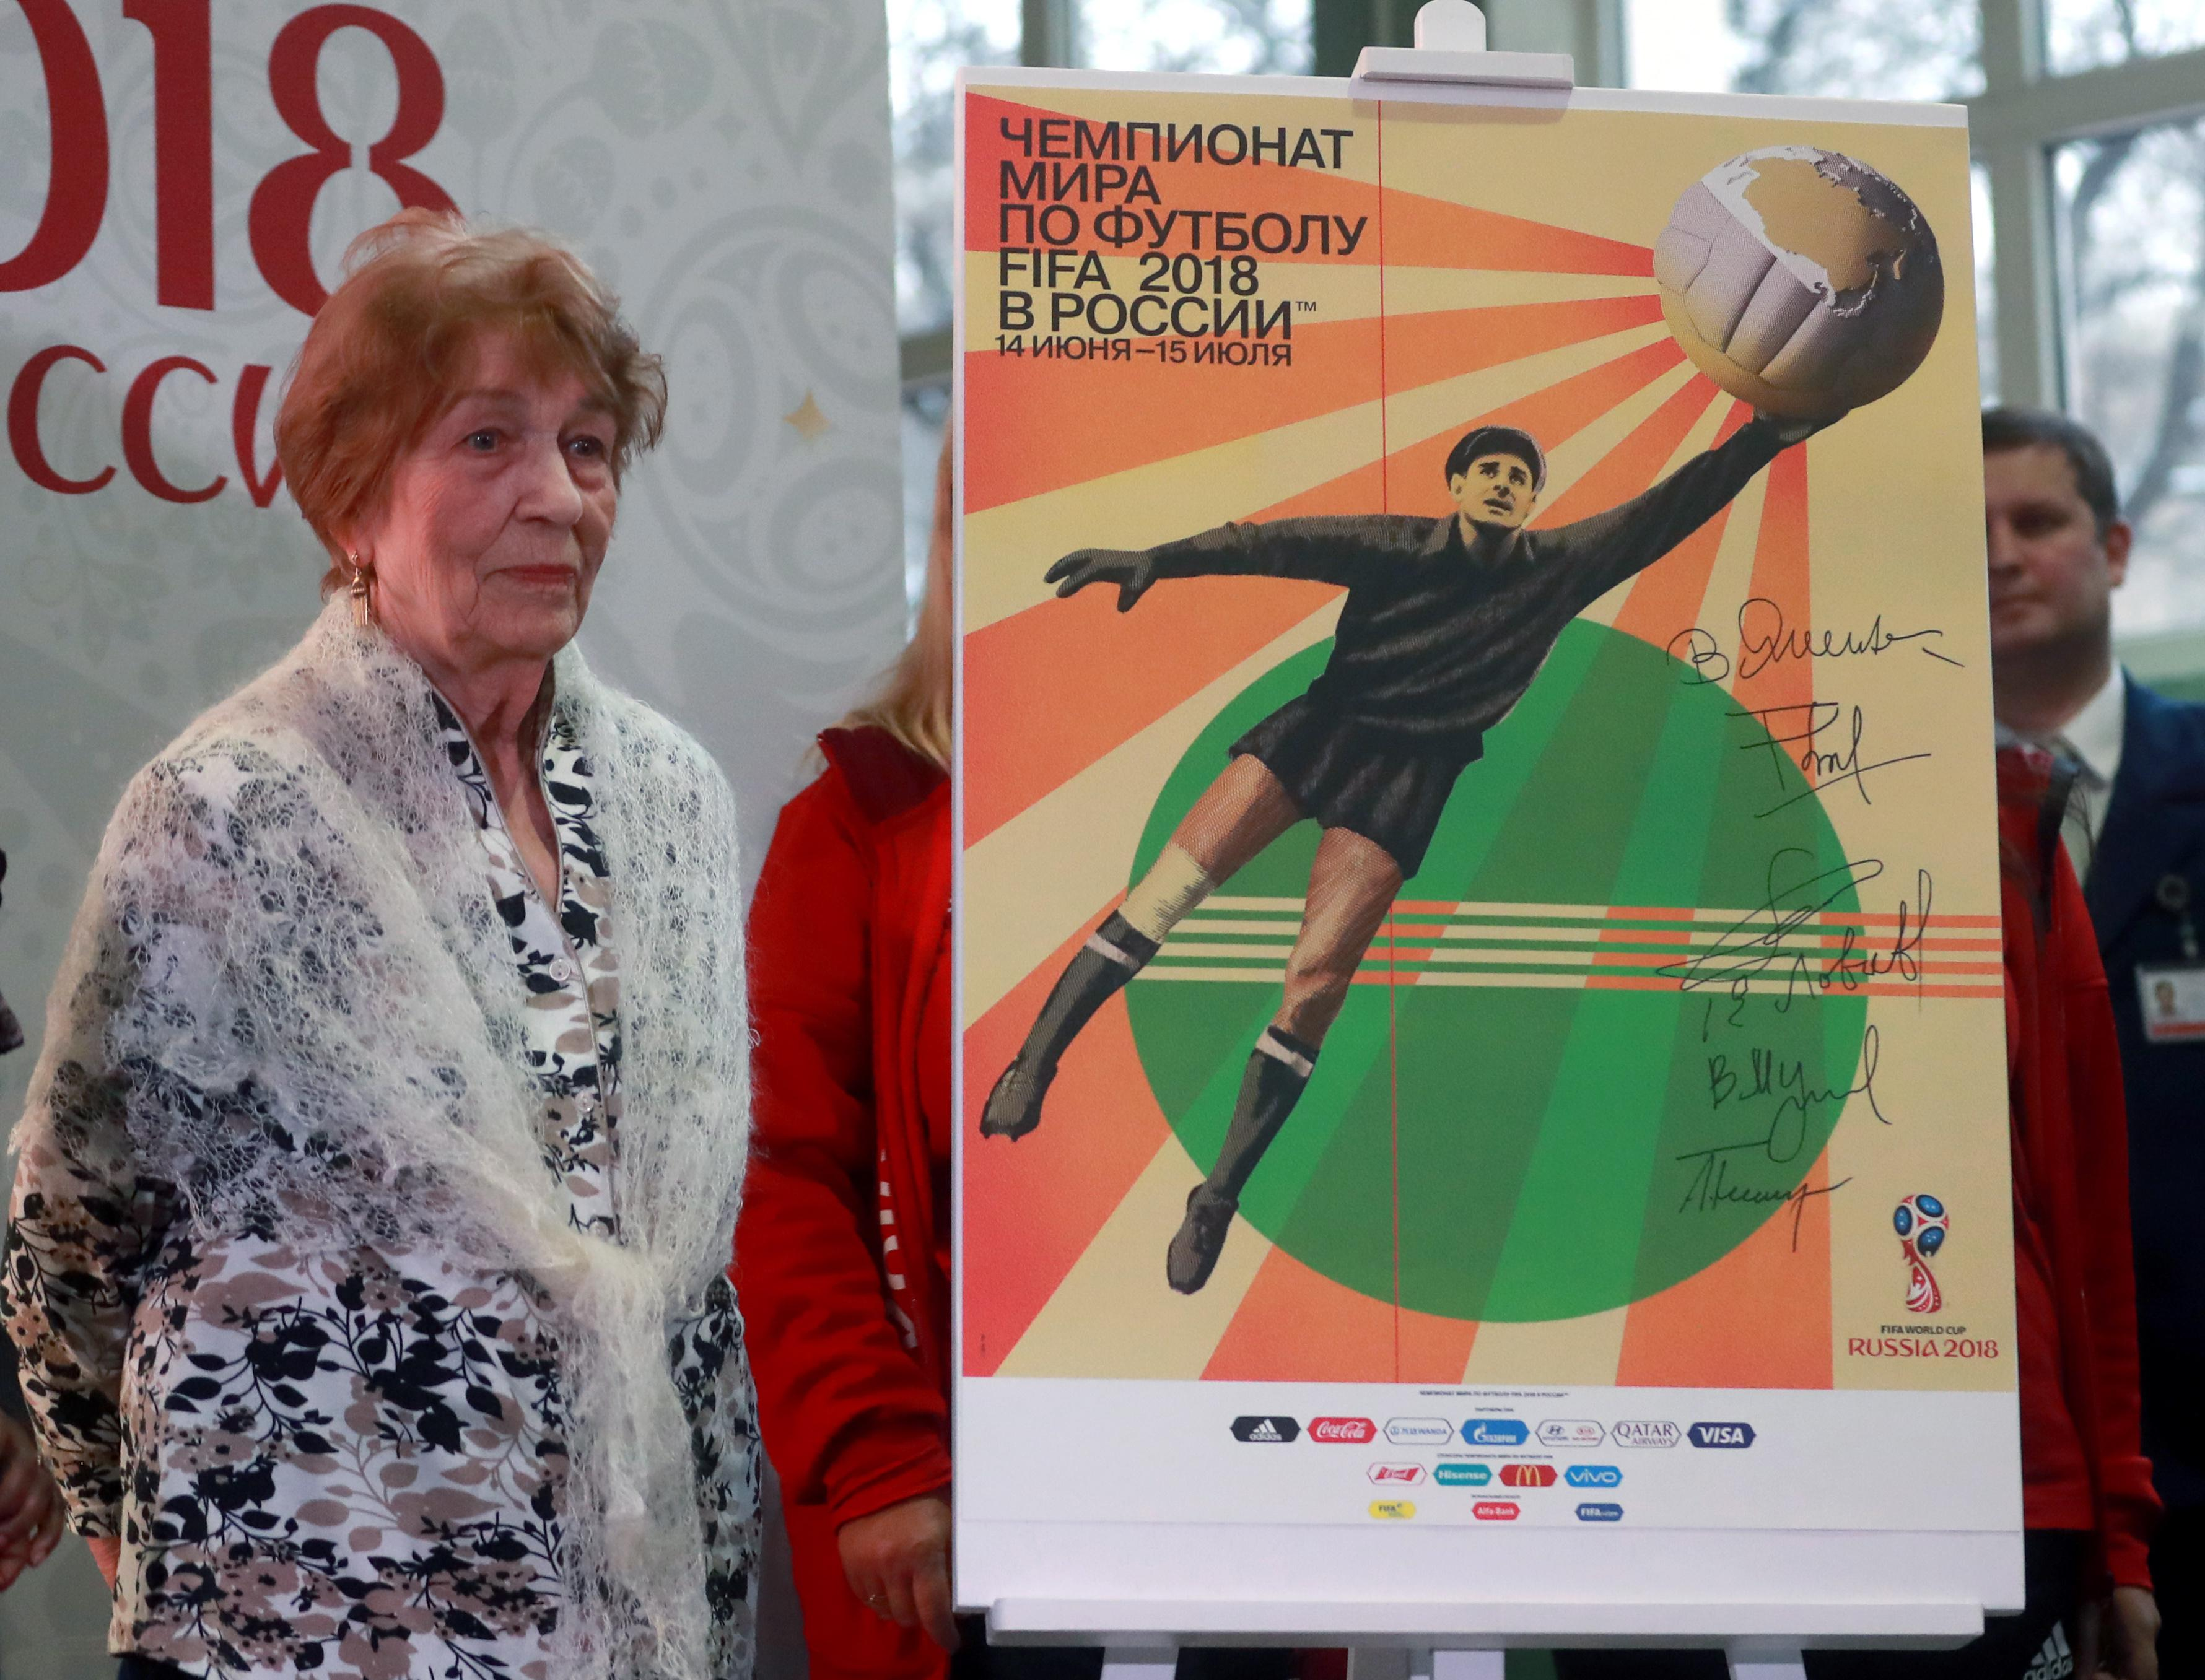 The poster was unveiled in Moscow today by the widow of Lev Yashin, Valentina